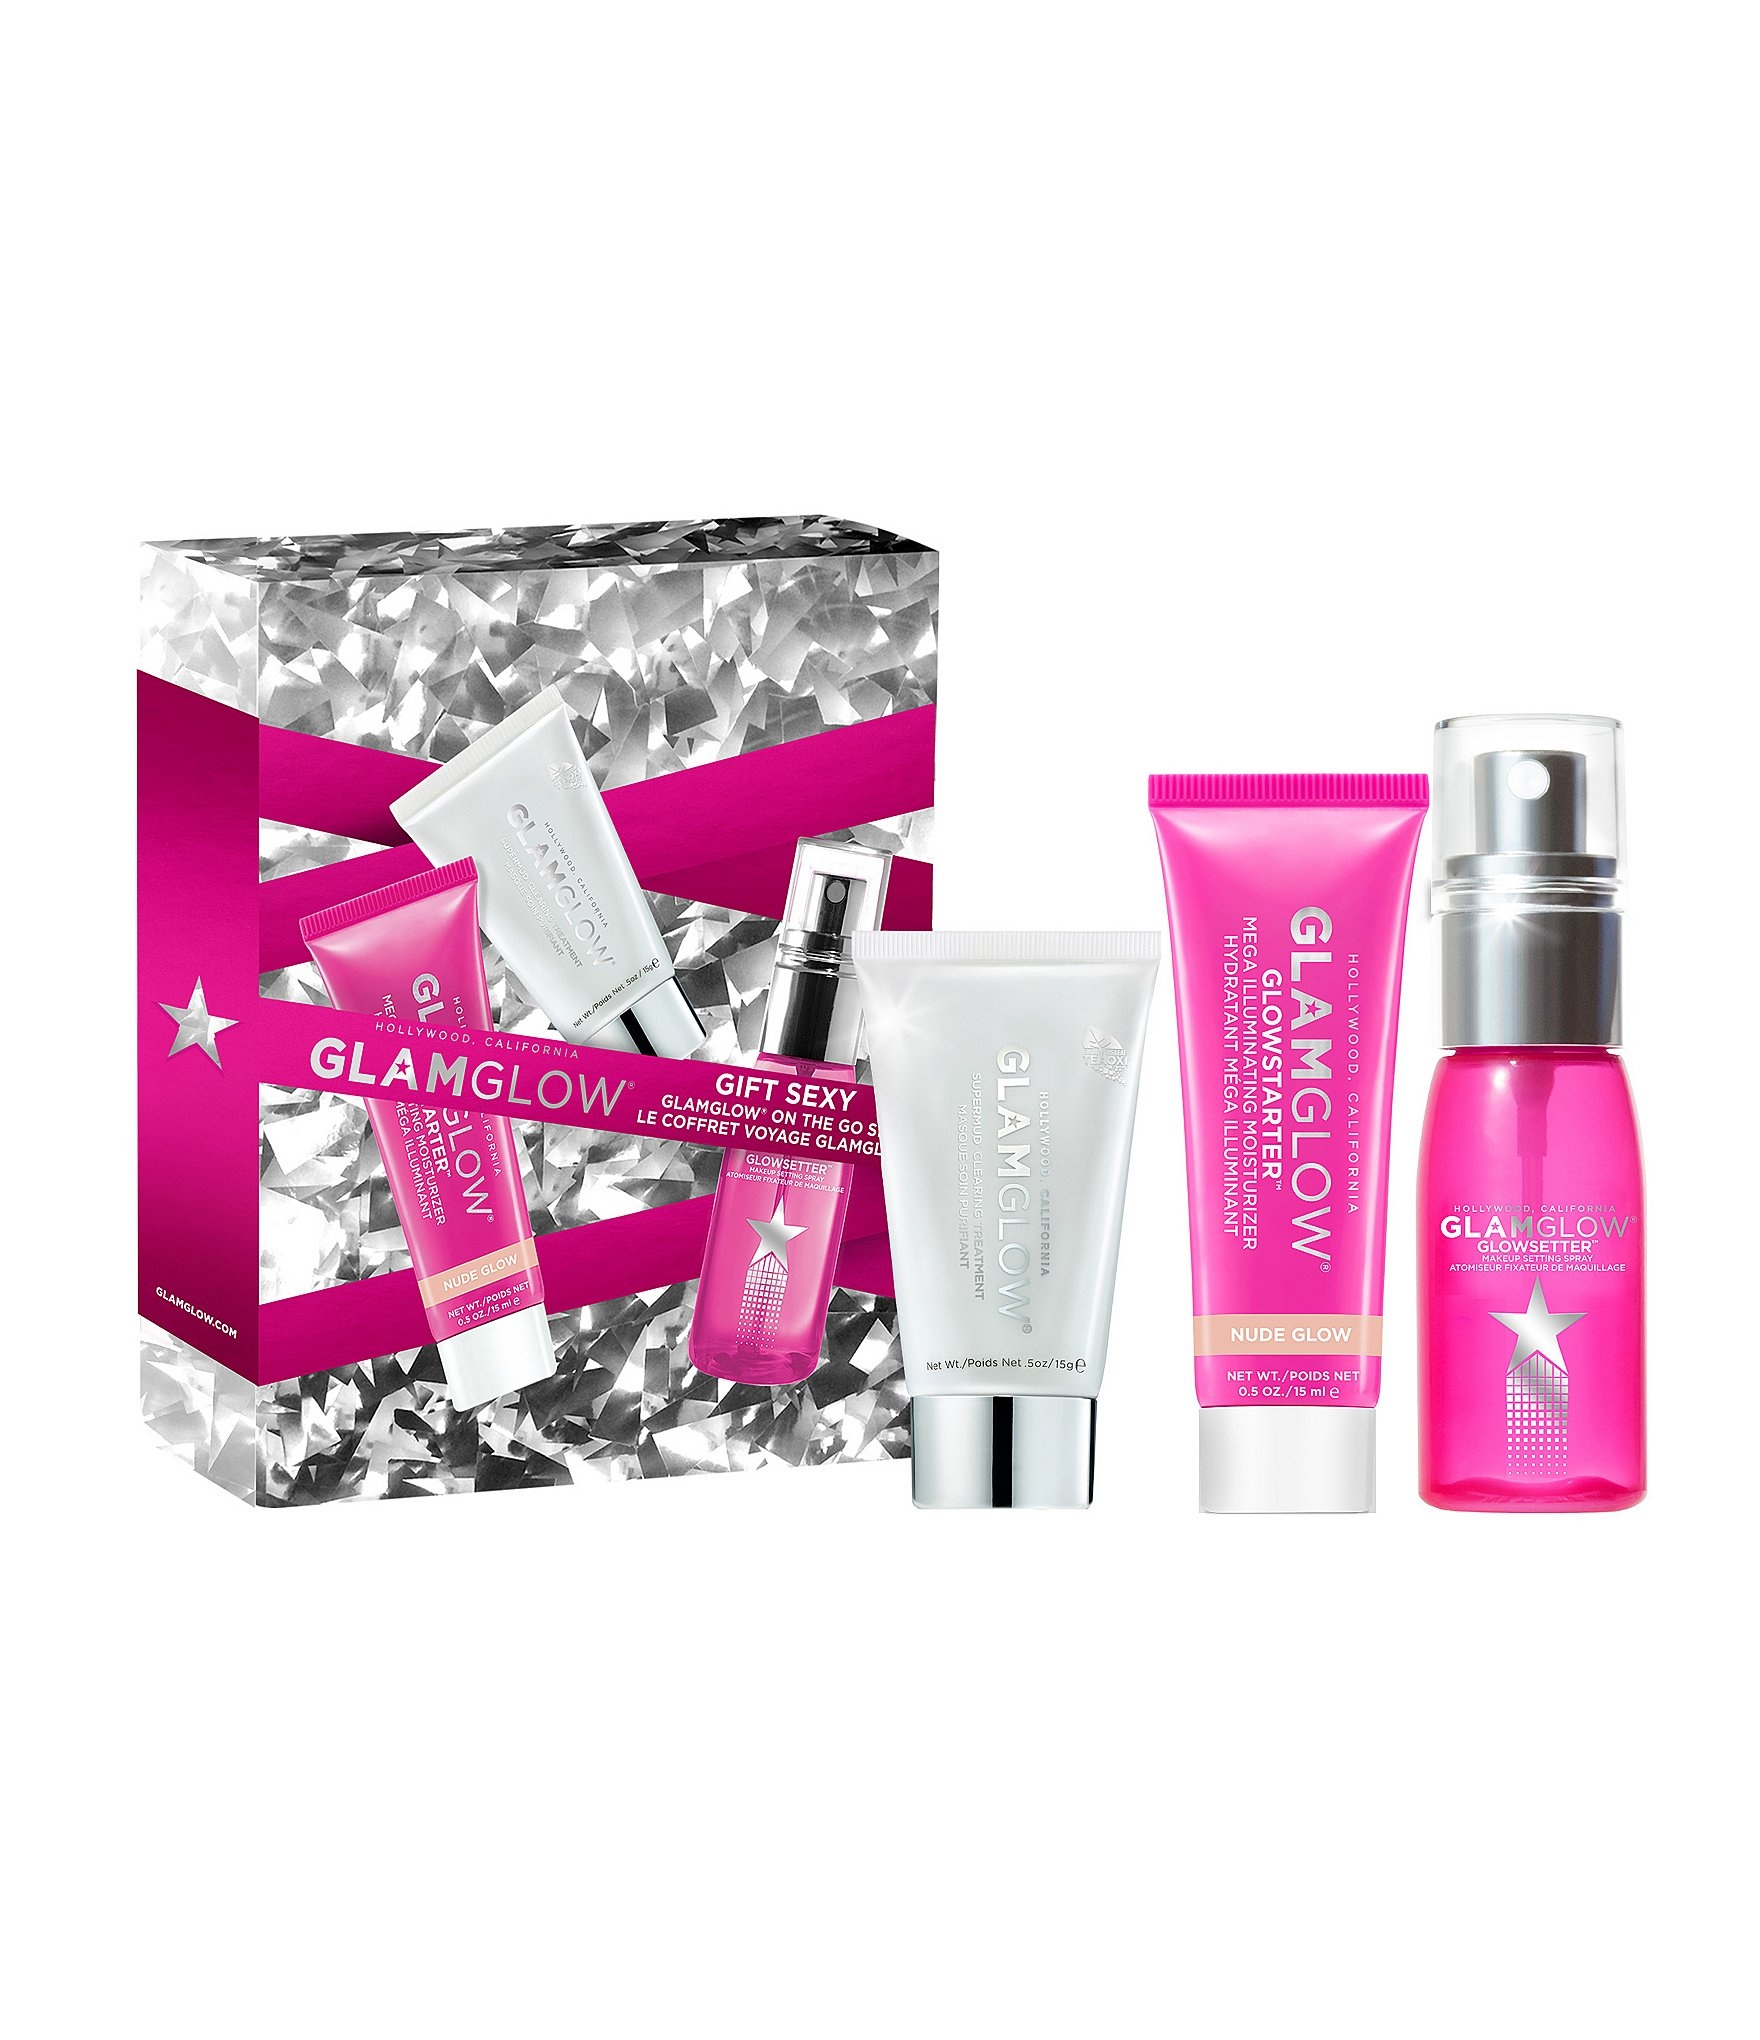 Glowsetter Makeup Setting Spray by glamglow #11